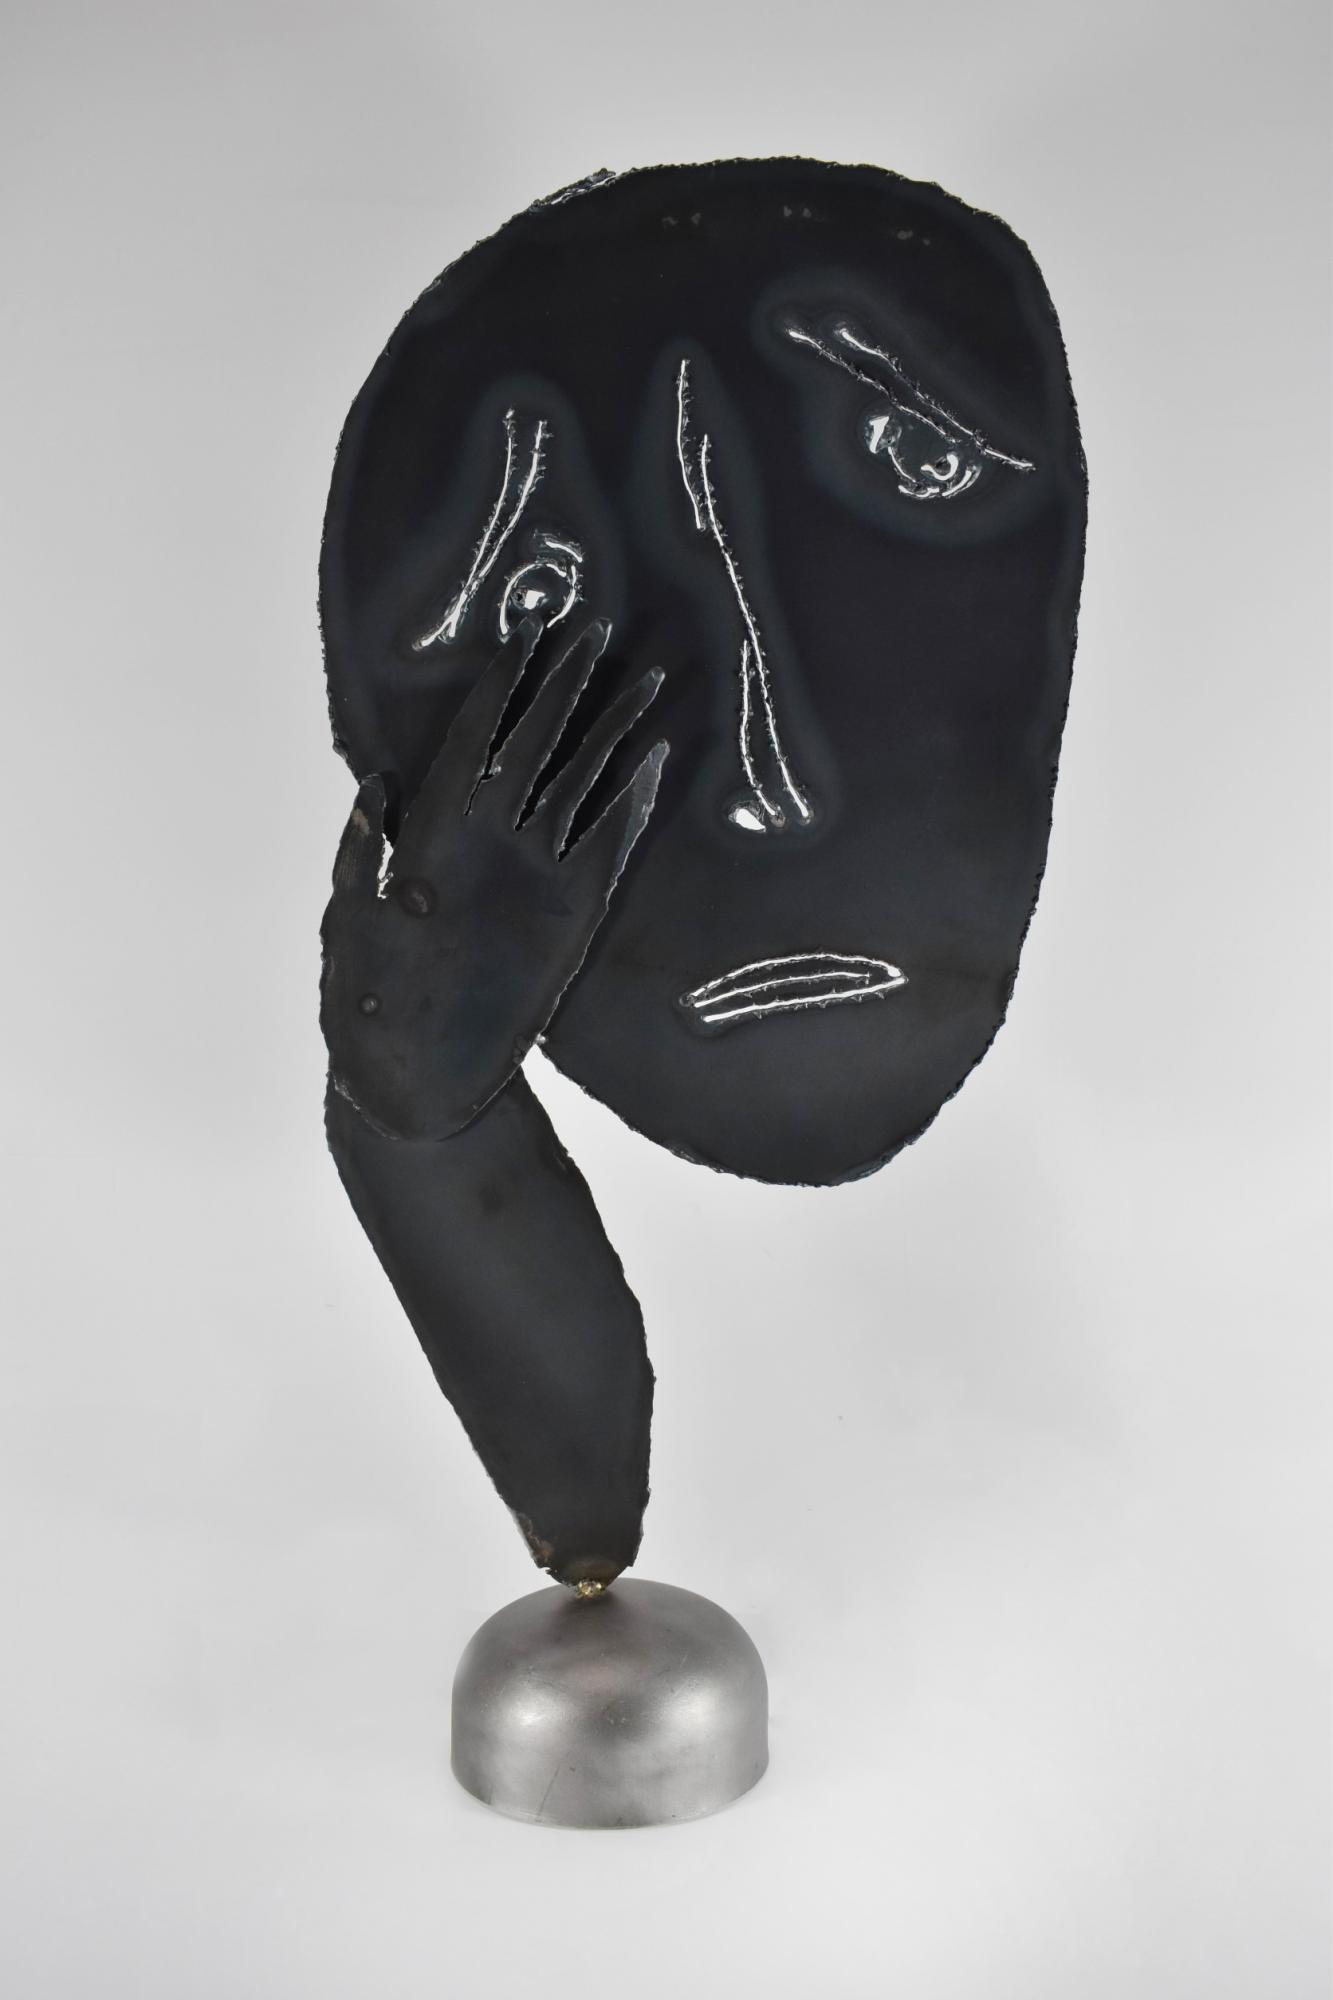 Crying Face 淚流滿面 NO Sooncheon 盧淳天 (South Korea, 1981-) Steel 鐵 63 x 35 x 3 cm 2014